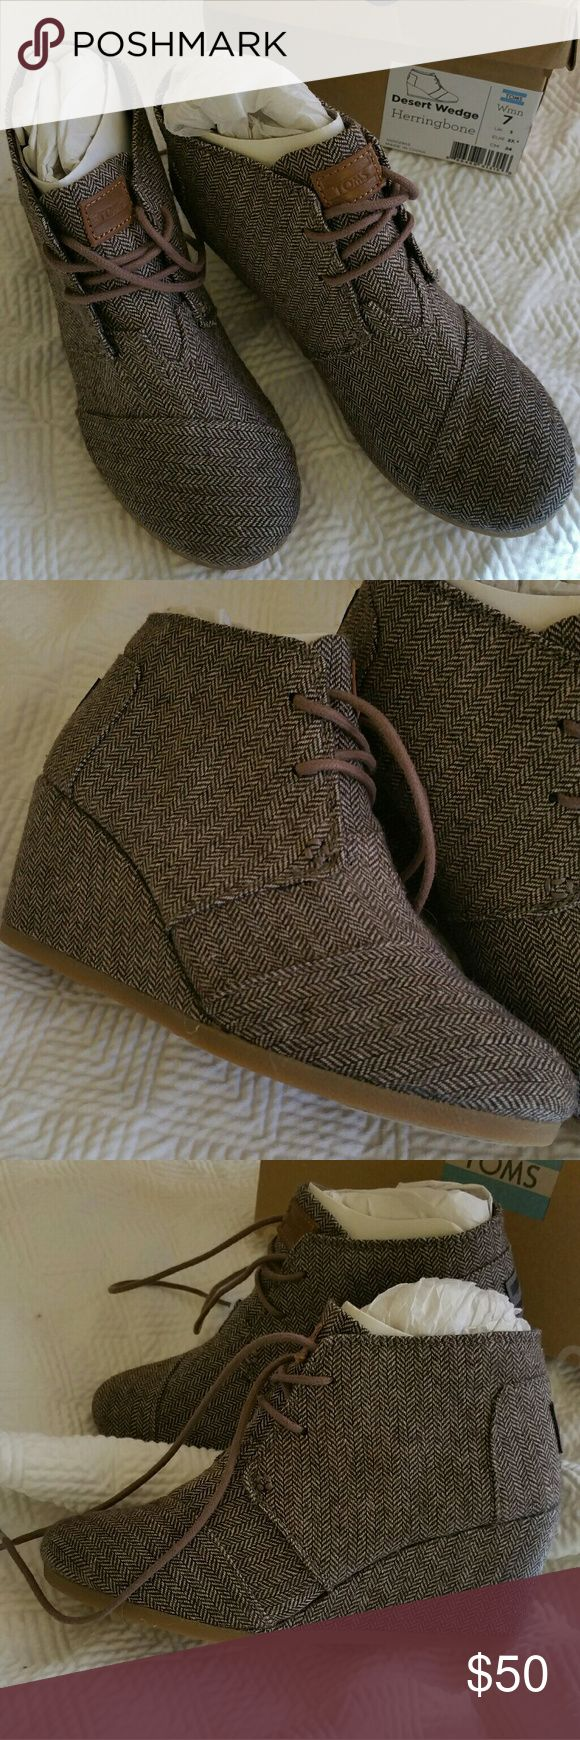 TOMS Desert Wedge Brown Herringbone Booties 7M New TOMS Brown Herringbone 2.5 in Wedge Booties with box! Great for jeans or with tights for winter! Super comfy and perfect for winter! TOMS Shoes Ankle Boots & Booties